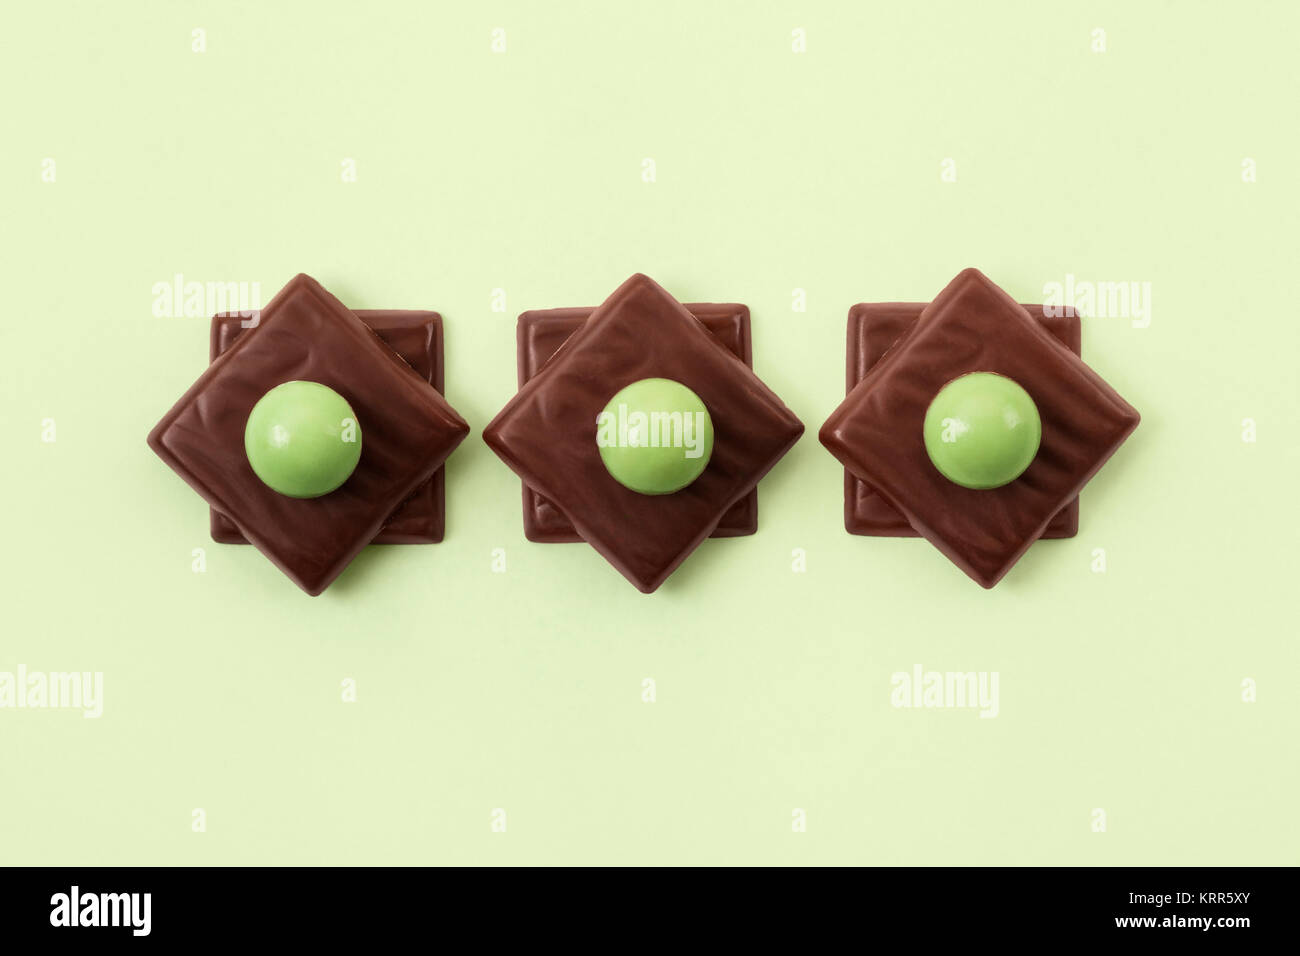 Mint Chocolates arranged in a line - Stock Image